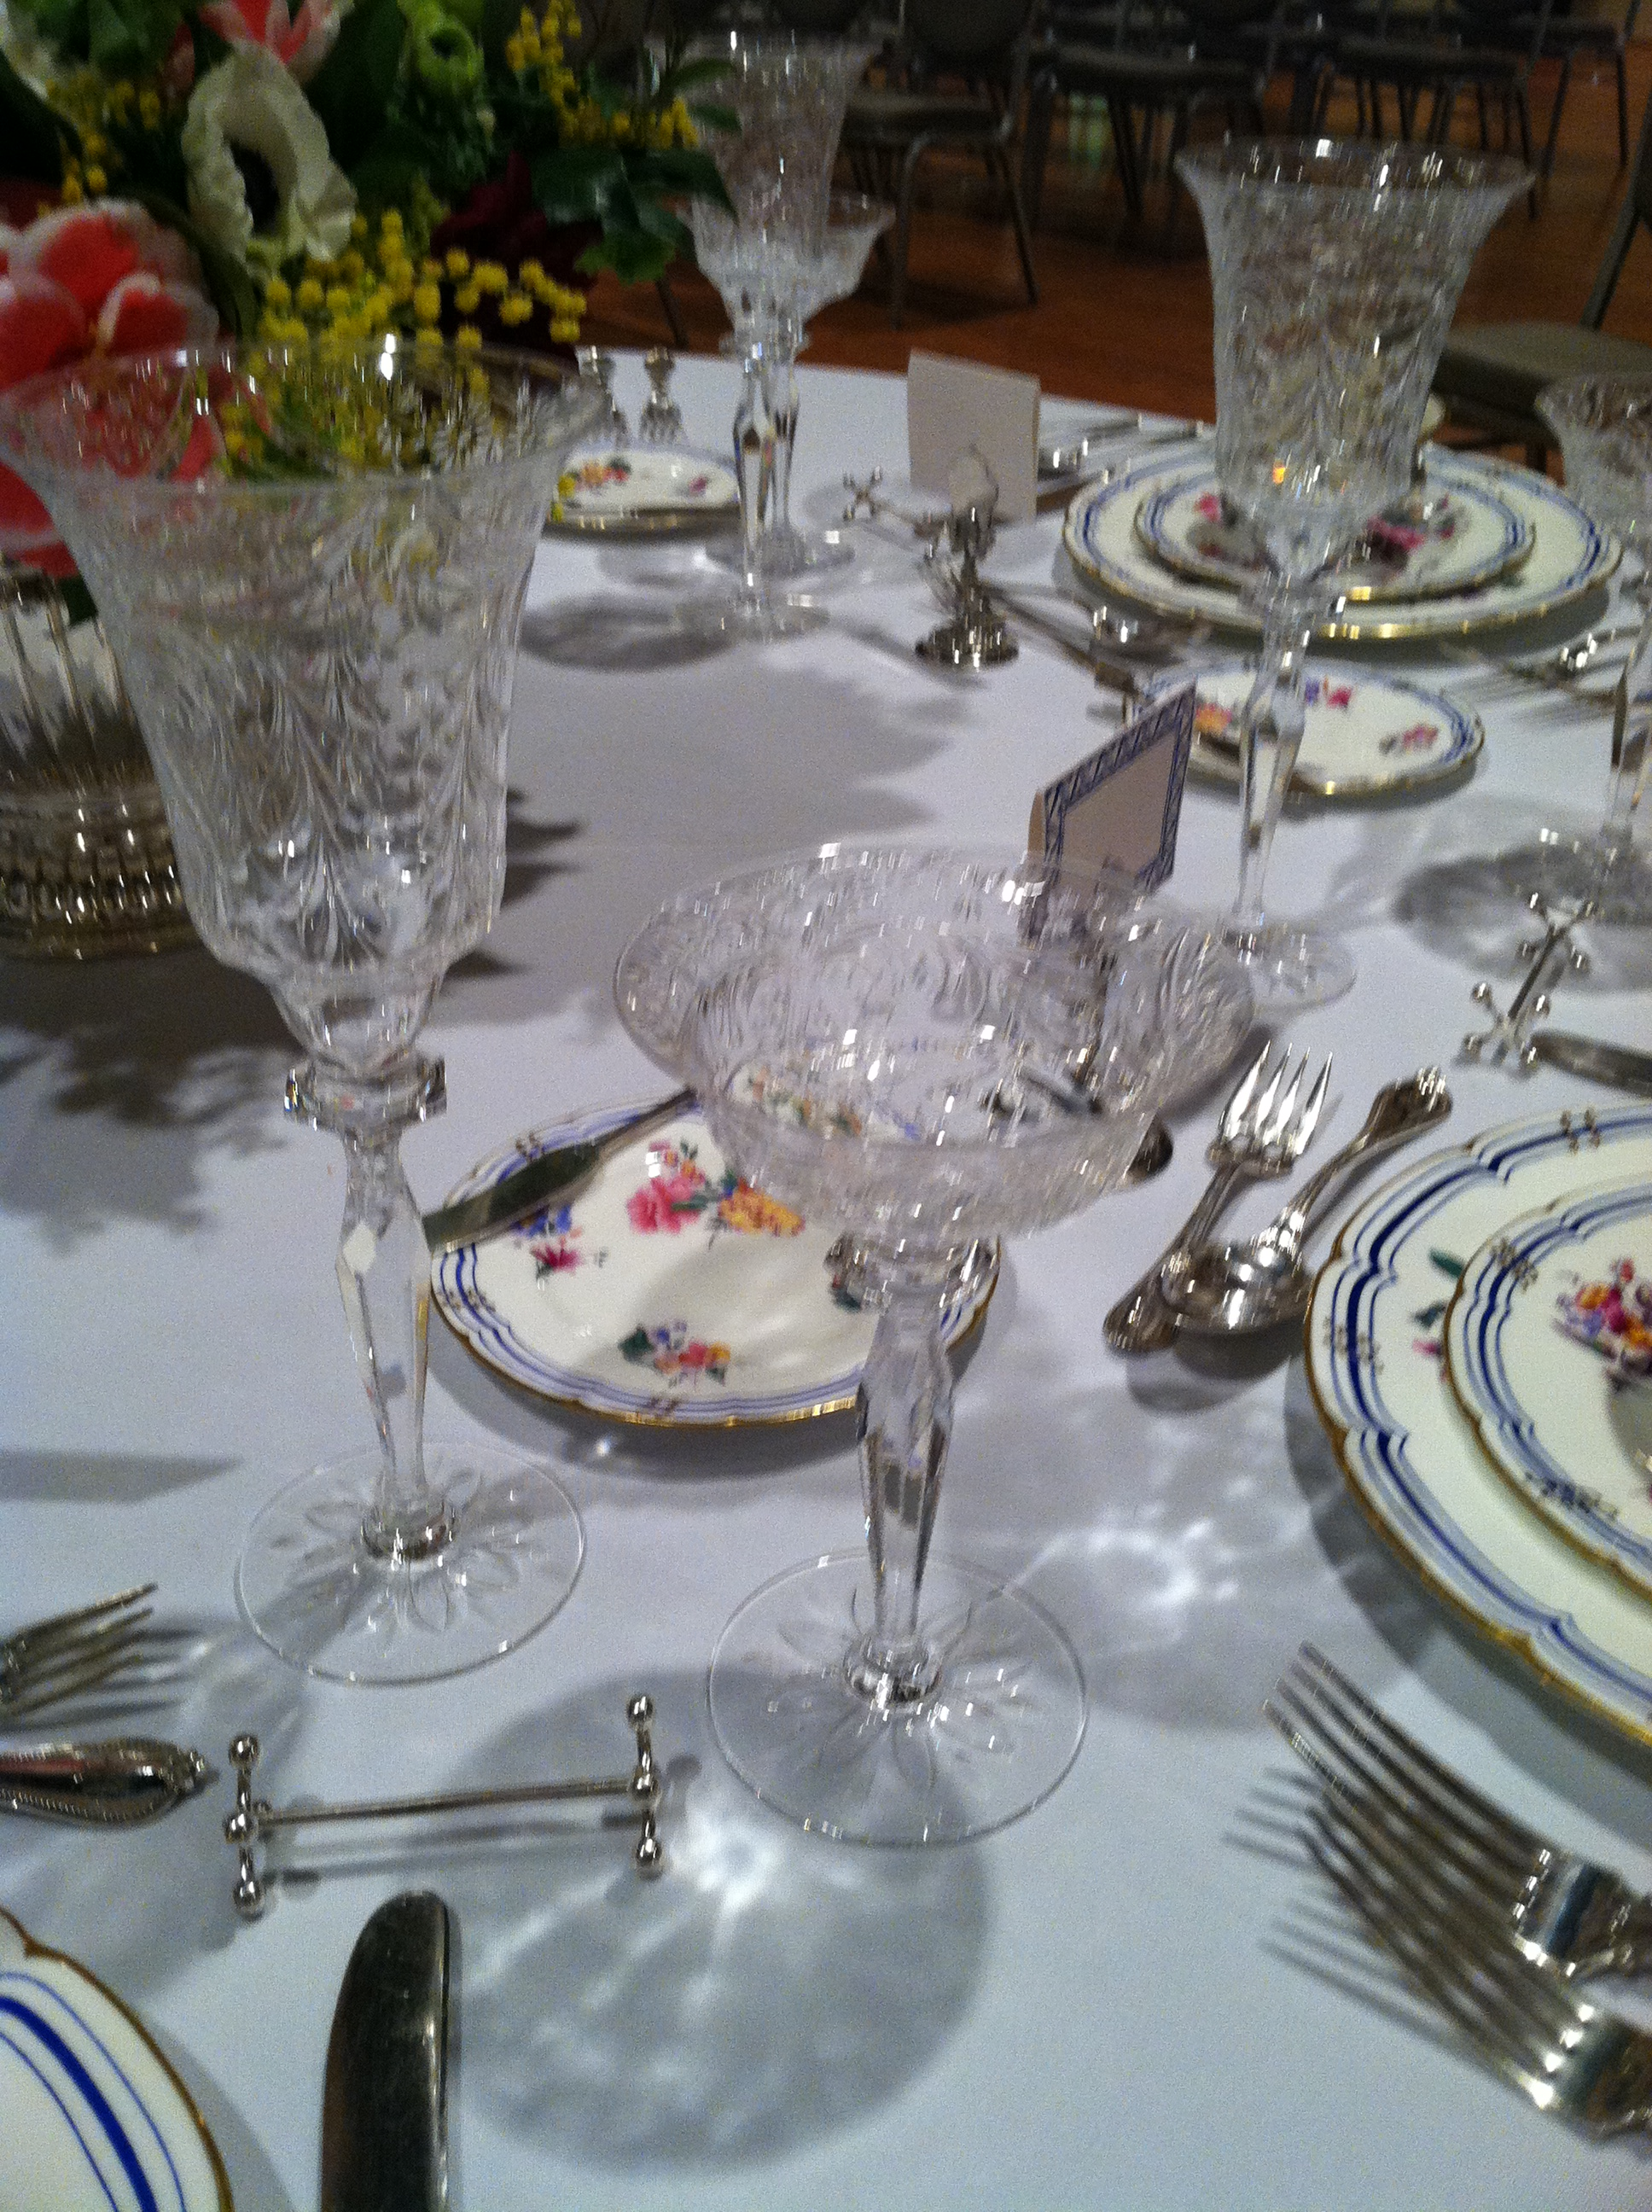 north carolina interior designer kathryn greeley uses hawkes crystal in tabletop design in aiken sc at the antiques in the heart of aiken show